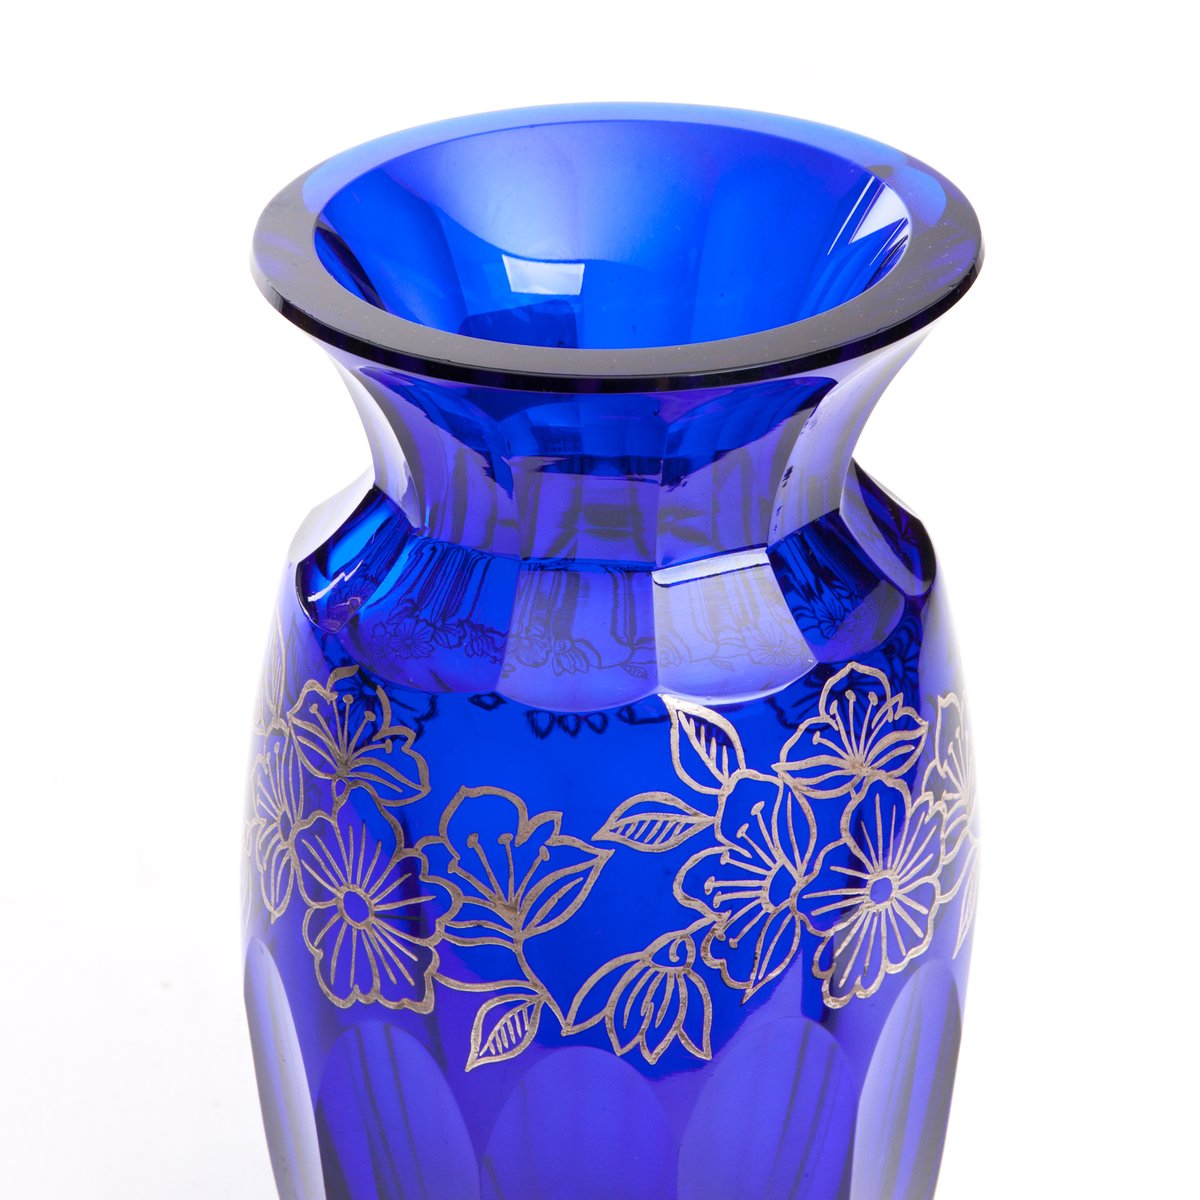 Mid century cobalt glass vase with galvanic silver decorations for price per piece floridaeventfo Image collections